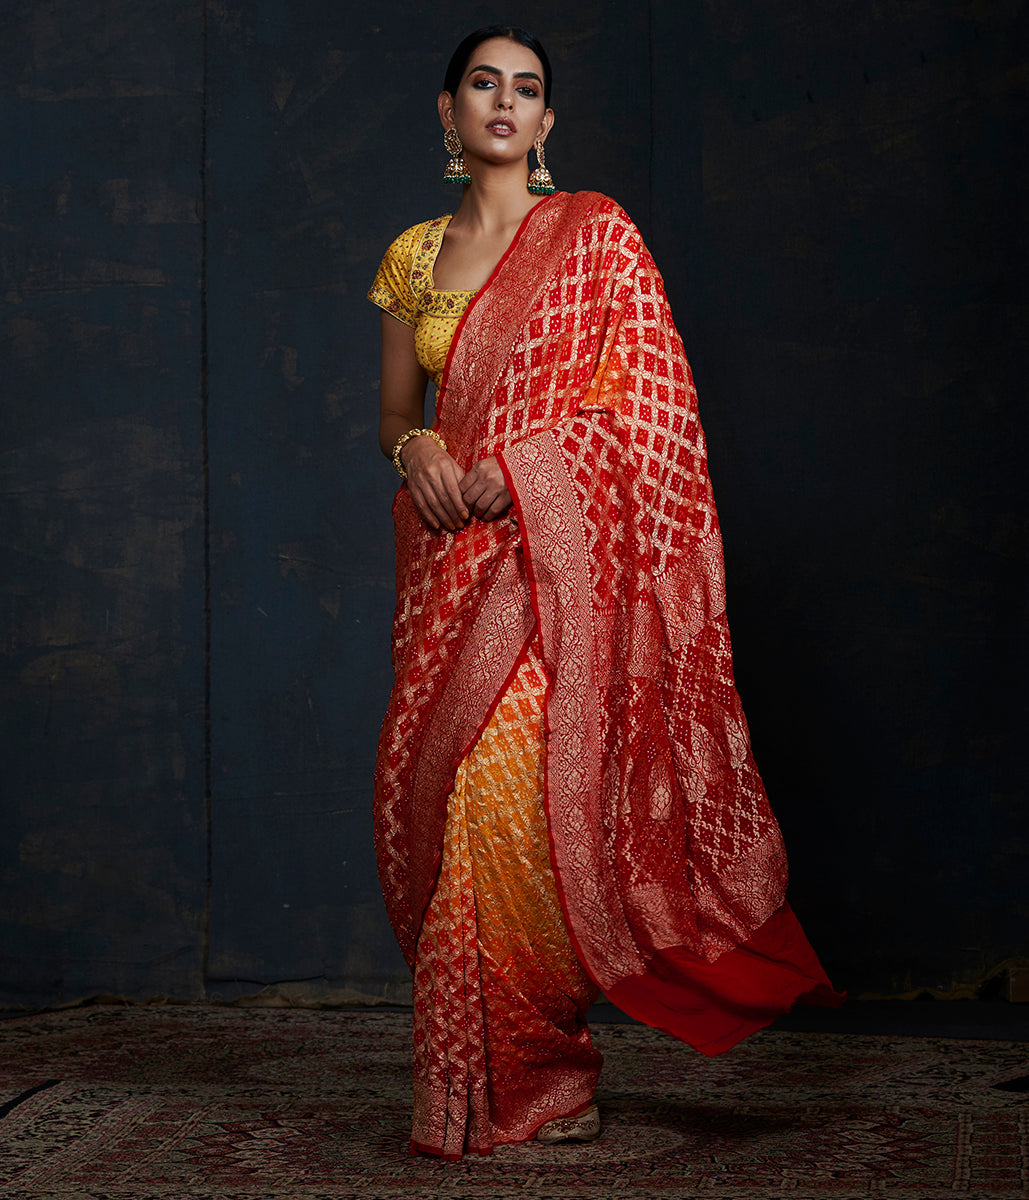 Handwoven Banarasi Bandhej Saree in red and orange ombre dye